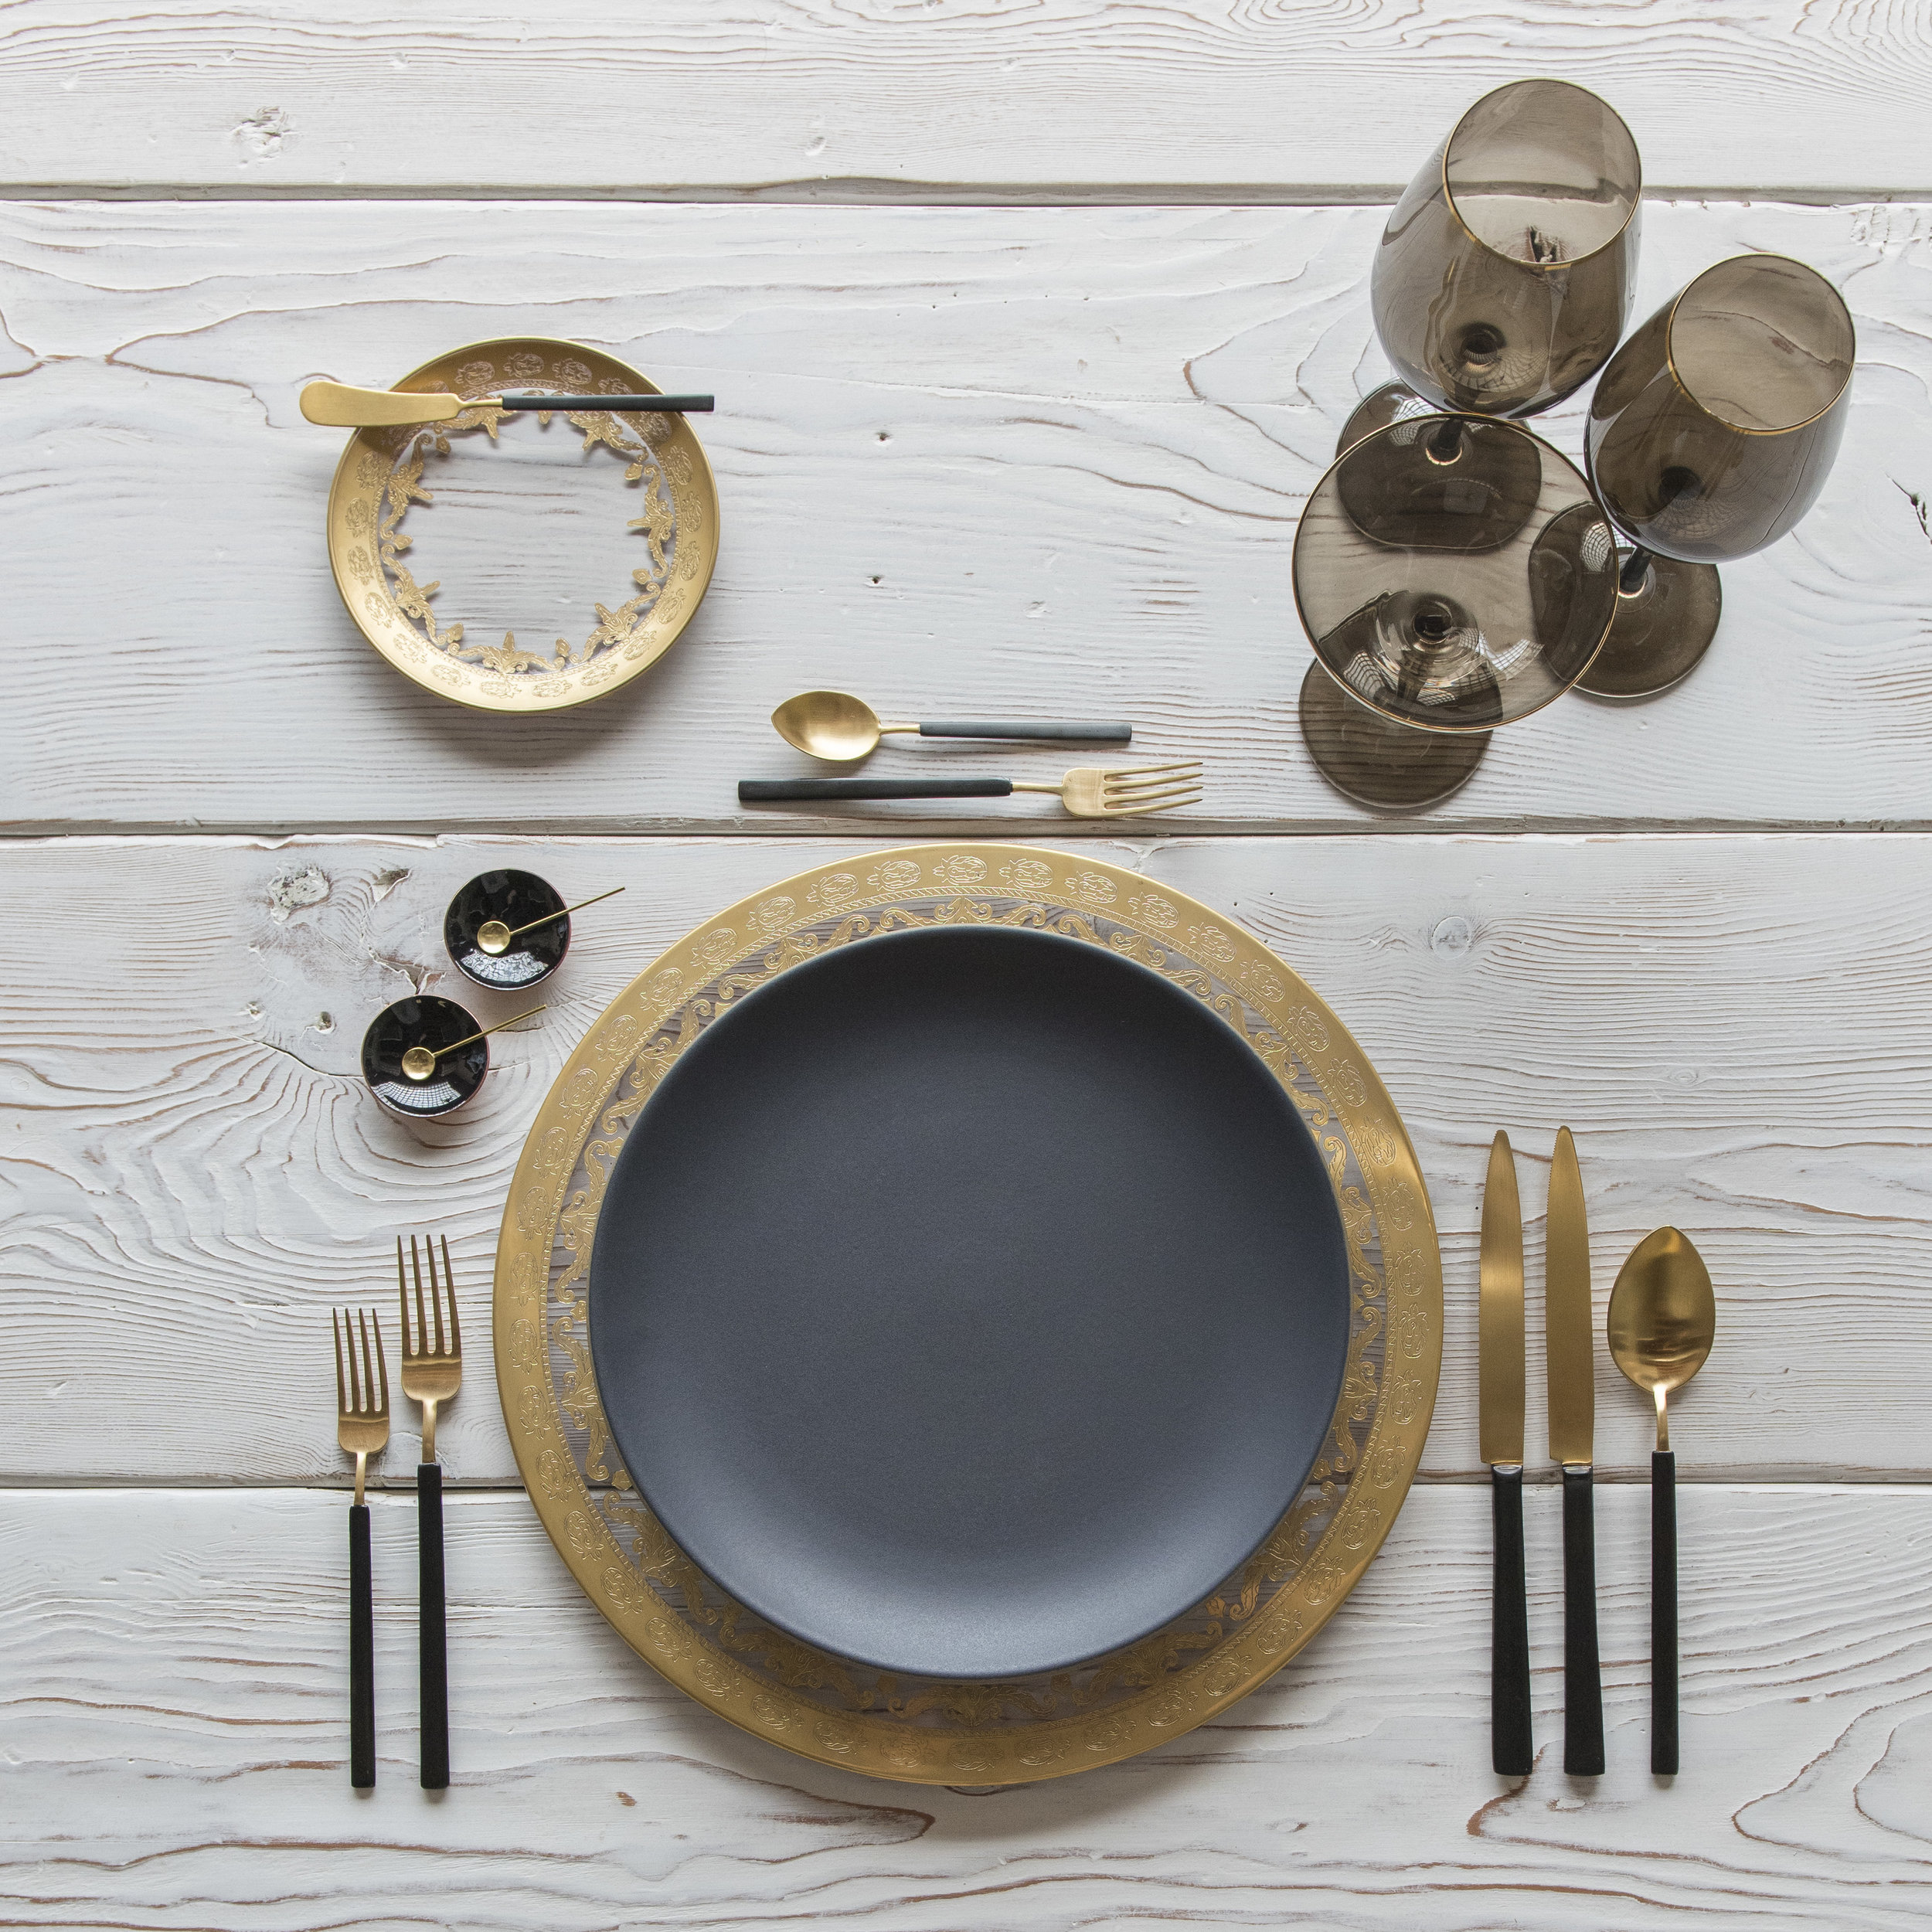 RENT: Versailles Glass Chargers/Dinnerware in 24k Gold + Heath Ceramics in Indigo/Slate + Axel Flatware in Matte 24k Gold/Black + Bella 24k Gold Rimmed Stemware in Smoke + Black Enamel Salt Cellars + Tiny Gold Spoons  SHOP: Bella 24k Gold Rimmed Stemware in Smoke + Black Enamel Salt Cellars + Tiny Gold Spoons